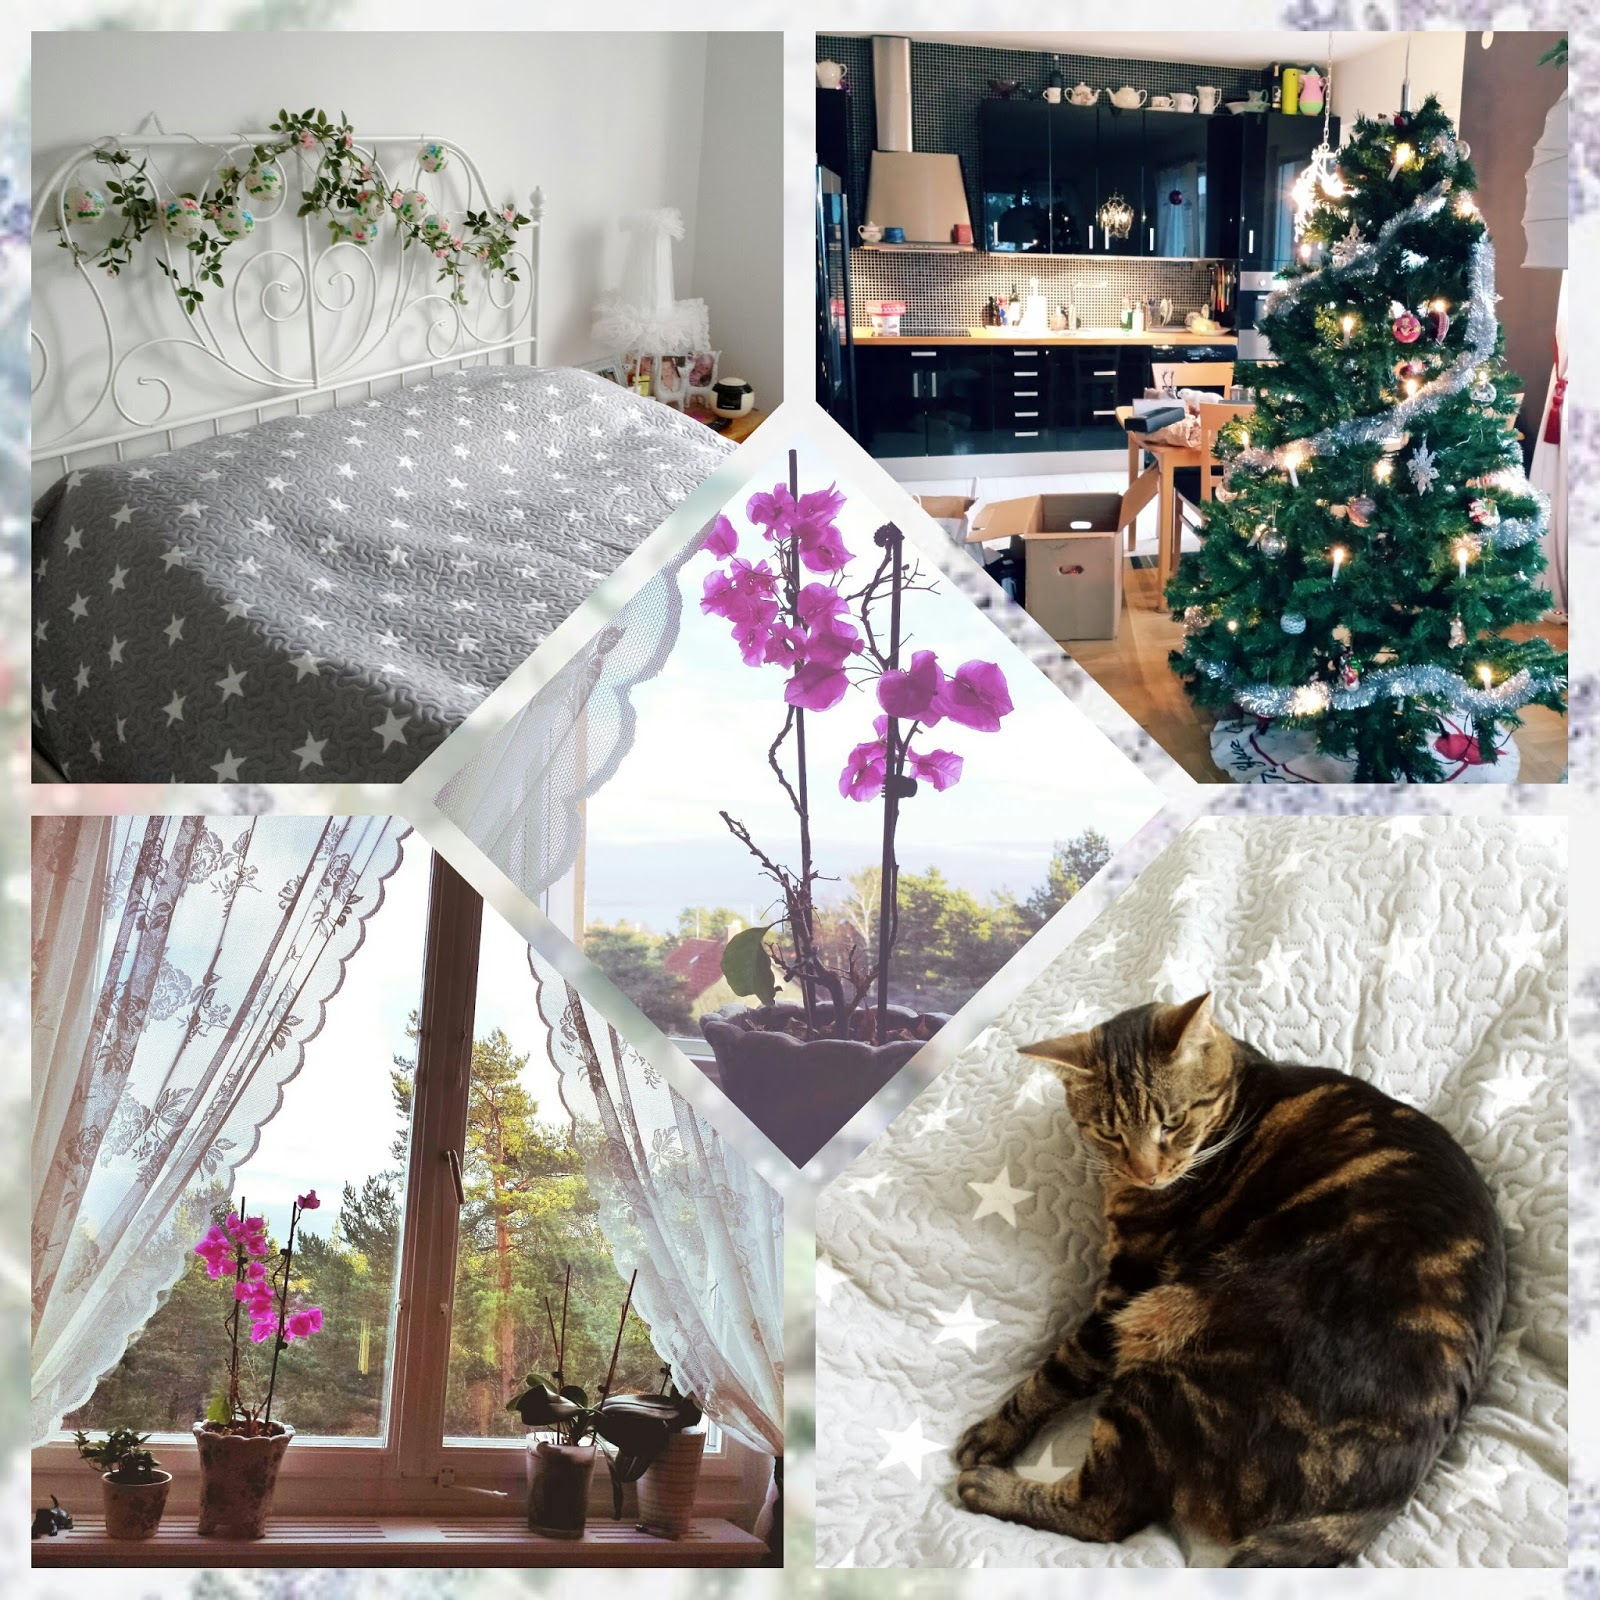 home, decor, lace curtains, cat, kitchen, christmas tree, new england